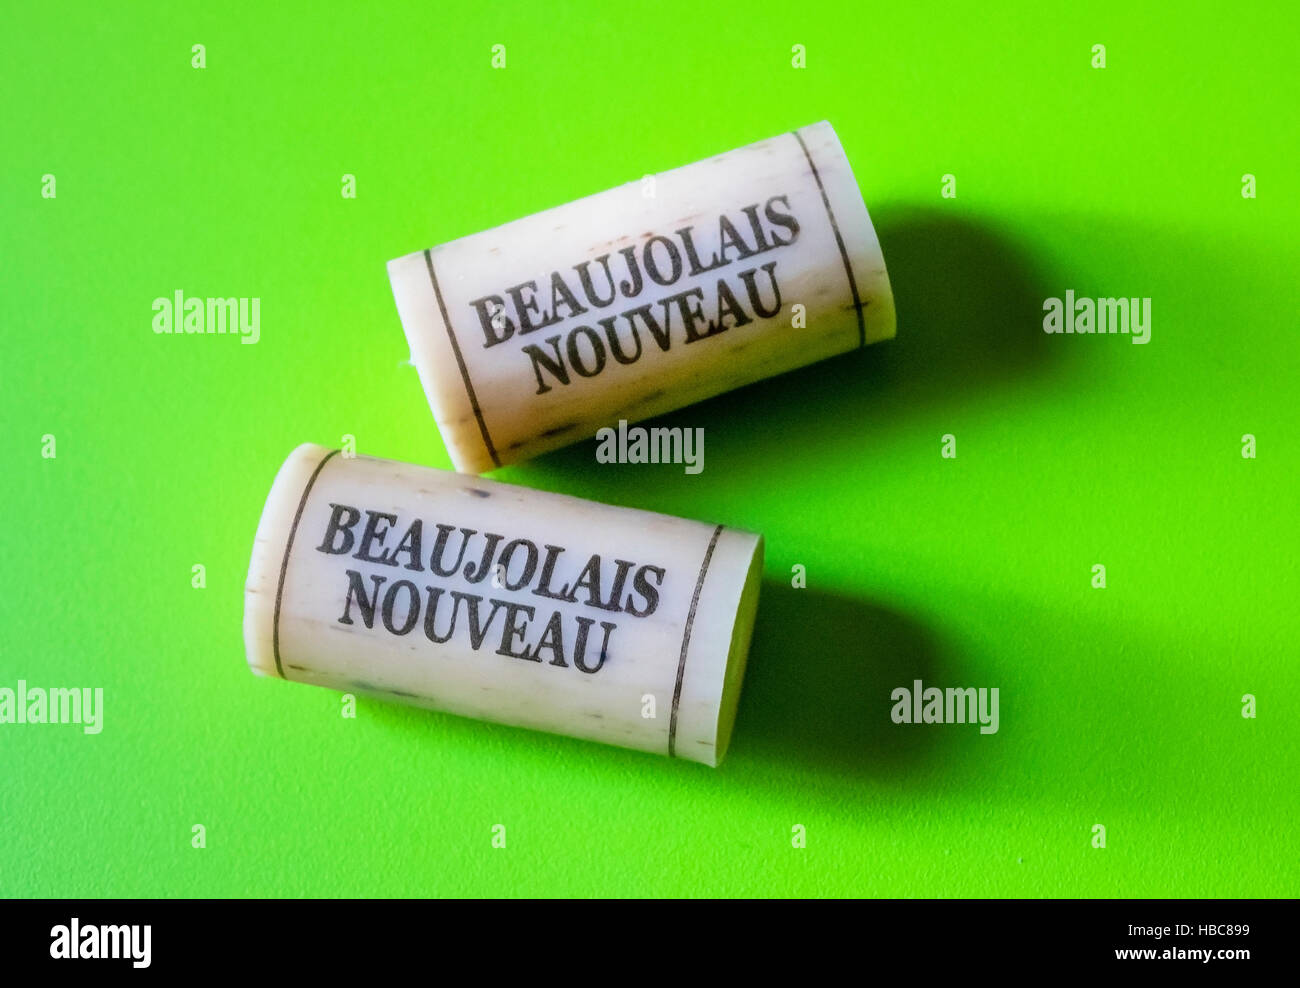 Beaujolais Nouveau synthetic corks - Stock Image